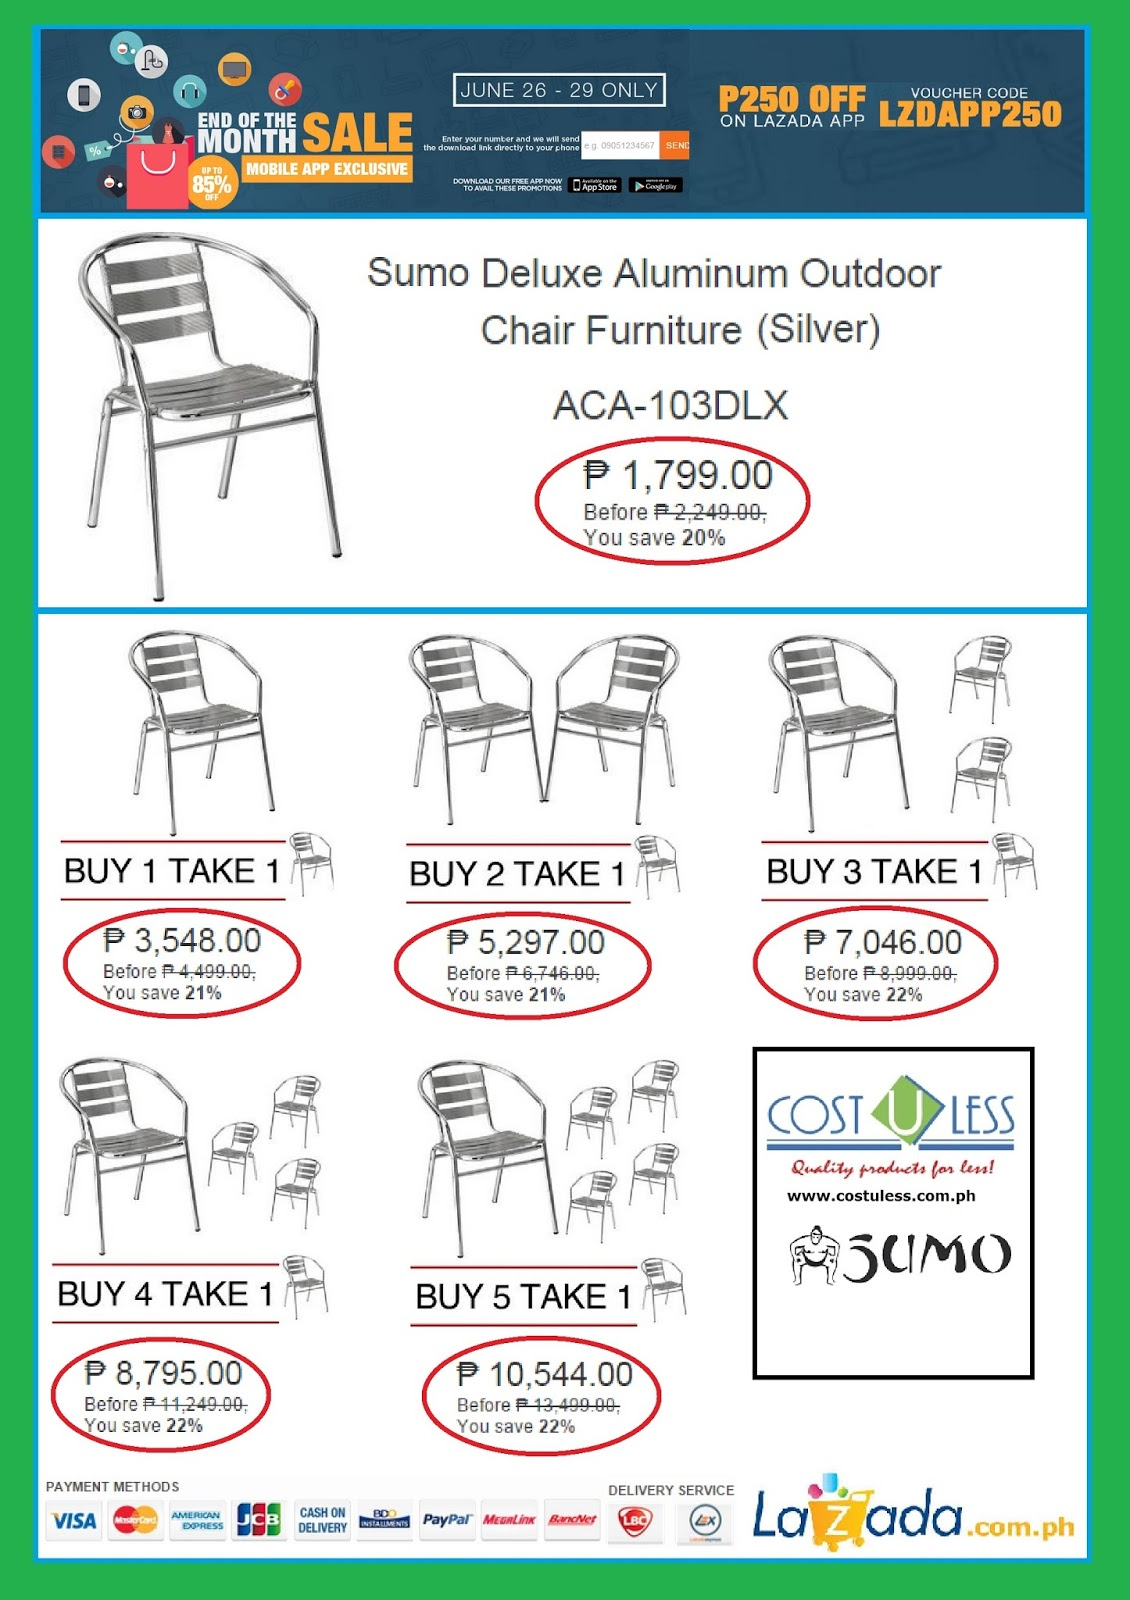 aluminum chairs for sale philippines. home \u0026 restaurant furniture - aluminum outdoor chair end of month sale chairs for philippines